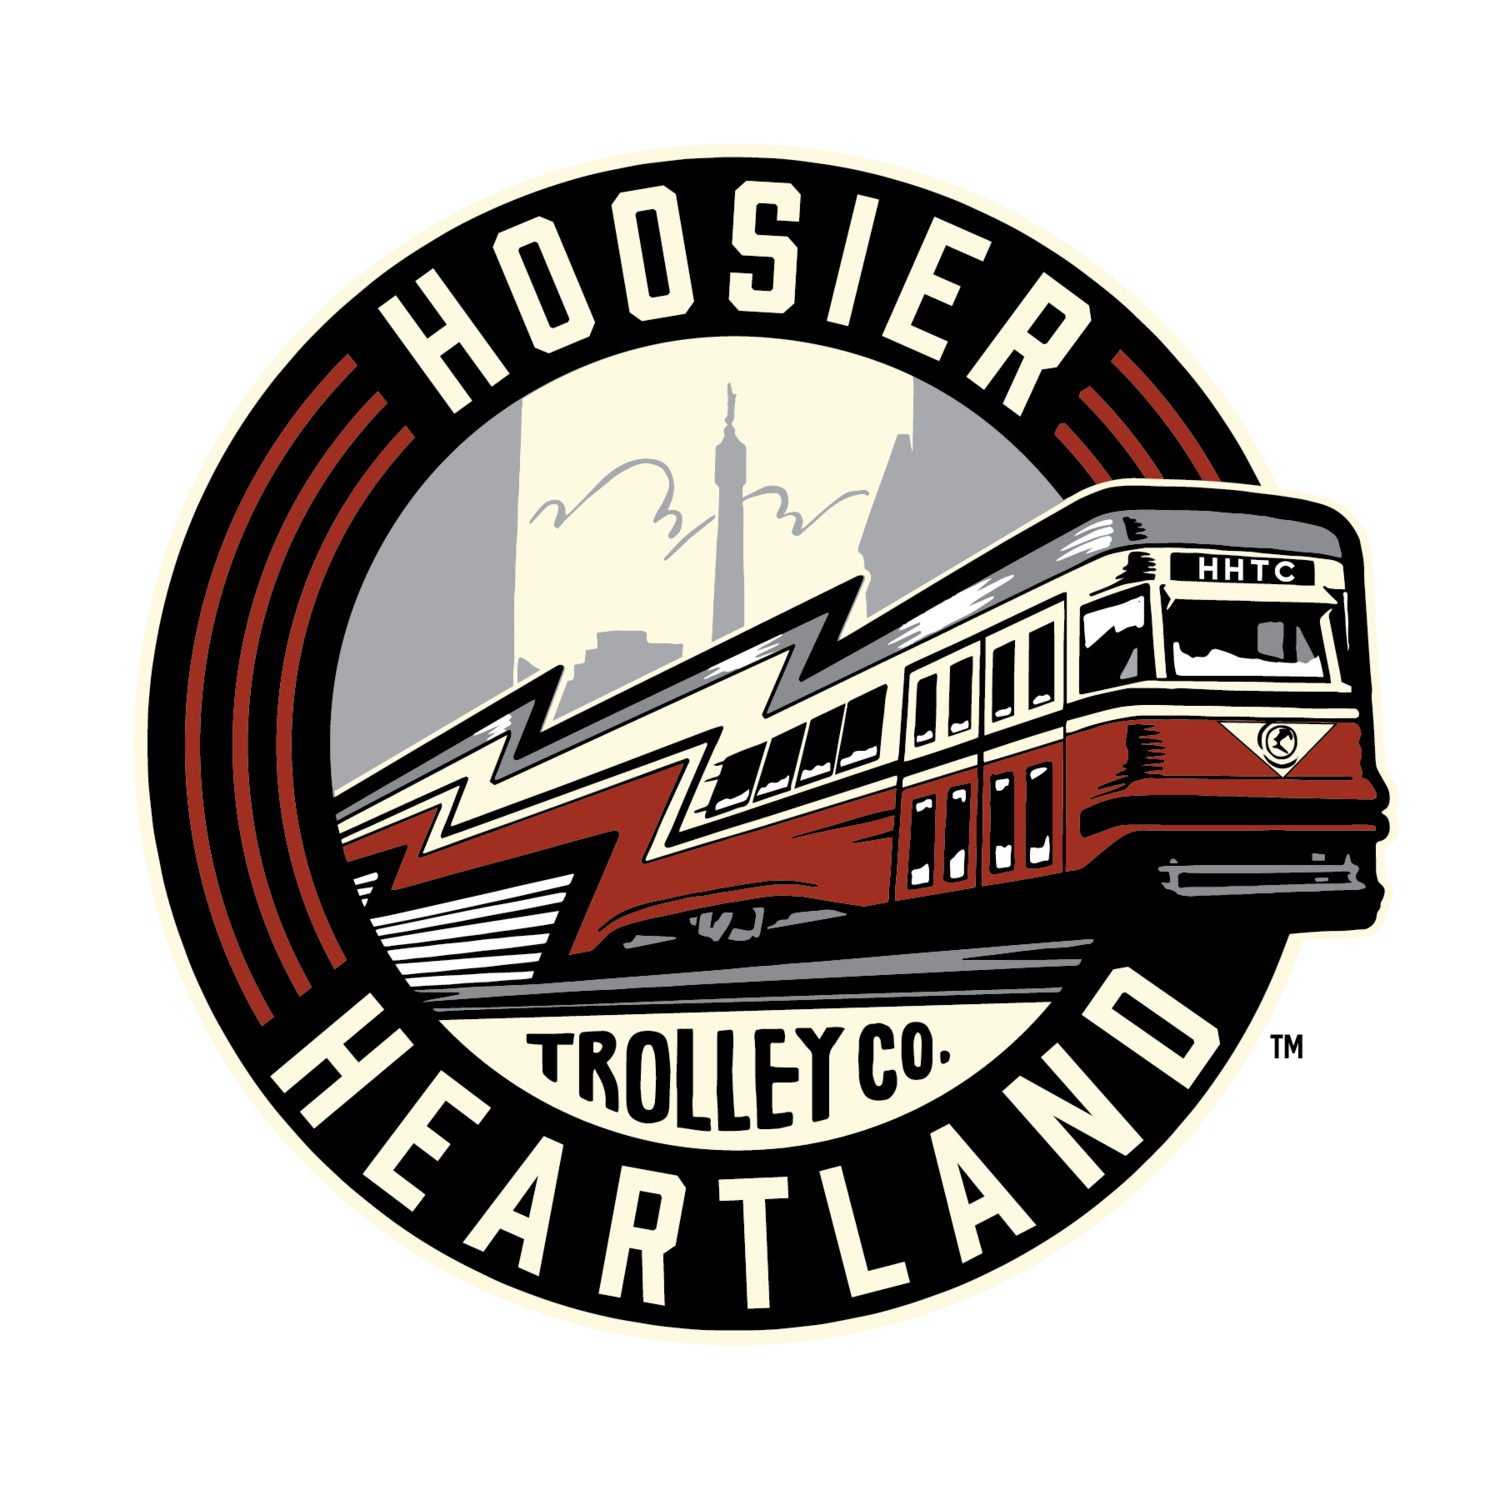 Hoosier Heartland Trolley Co.